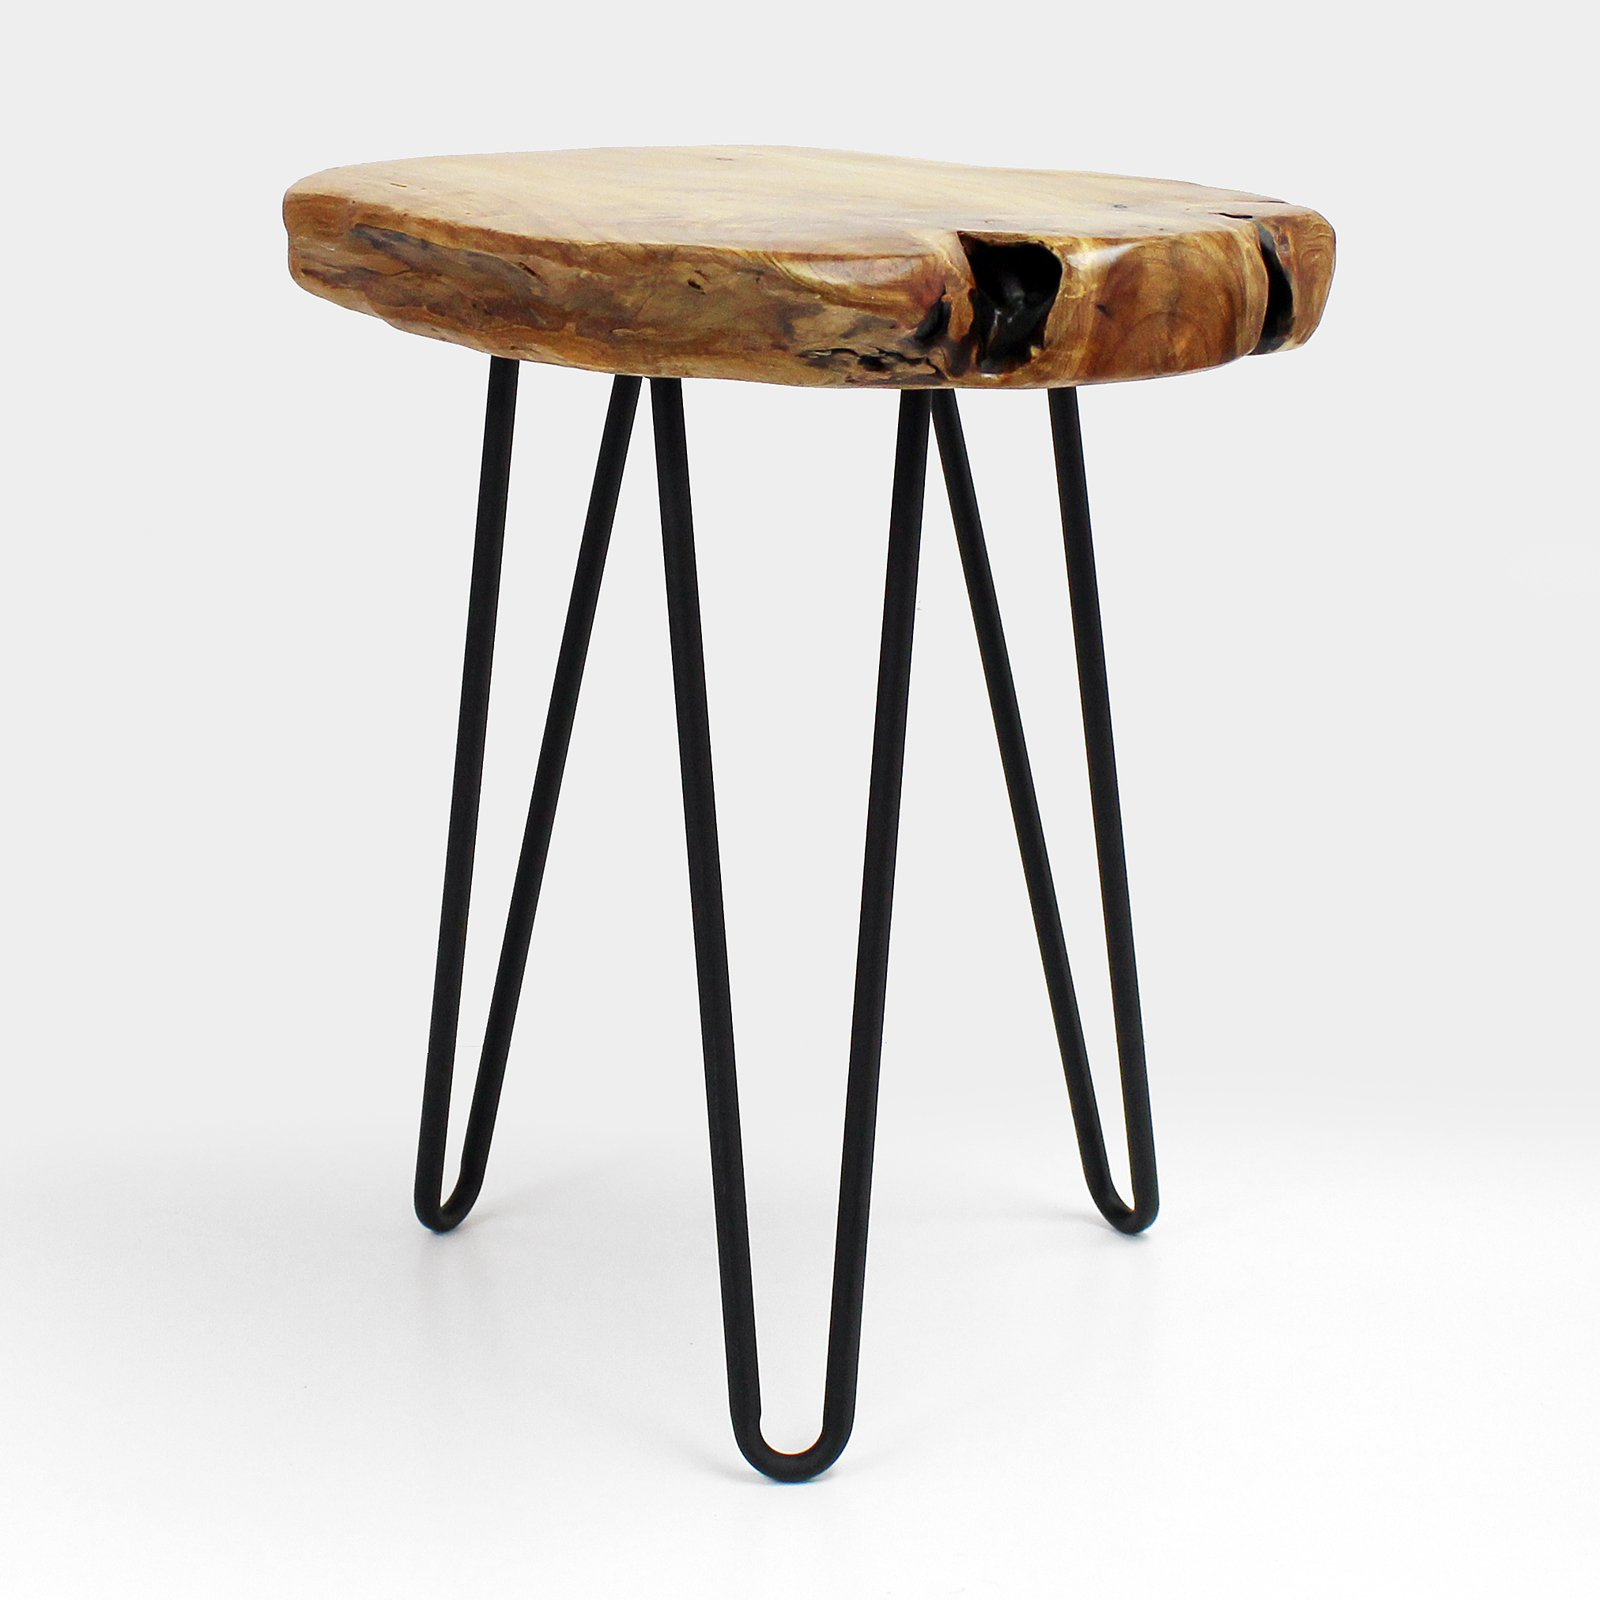 WELLAND Live Edge Side Table with Hairpin Legs, Natural Edge Side Table, Small Nightstand Wood, 15.5'' Tall by WELLAND (Image #2)